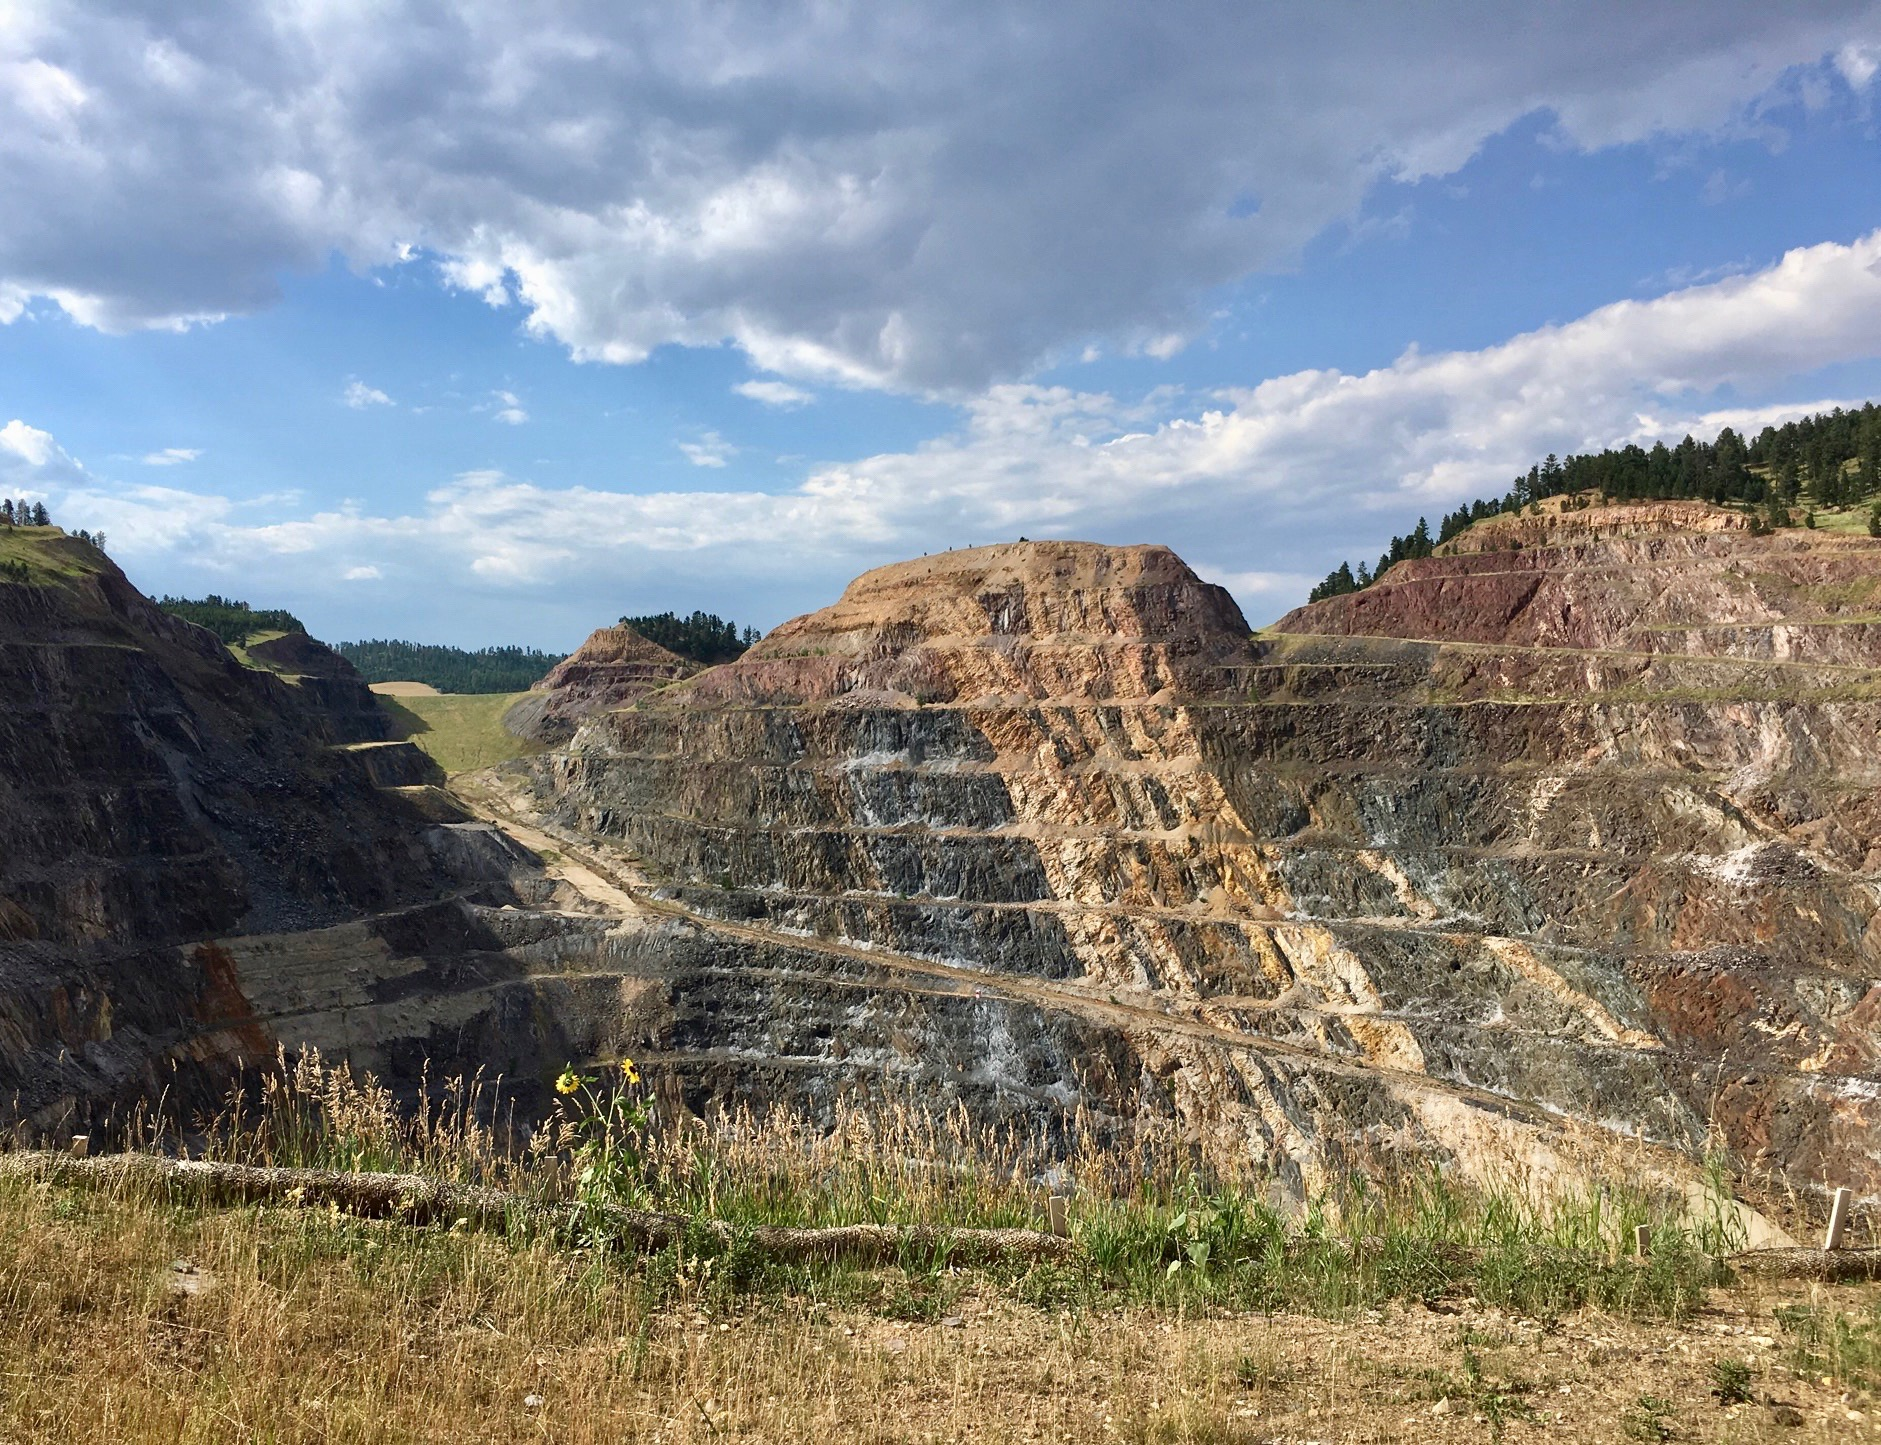 Homestake mine in Lead, South Dakota. Now transformed into a laboratory in search of Dark Matter.